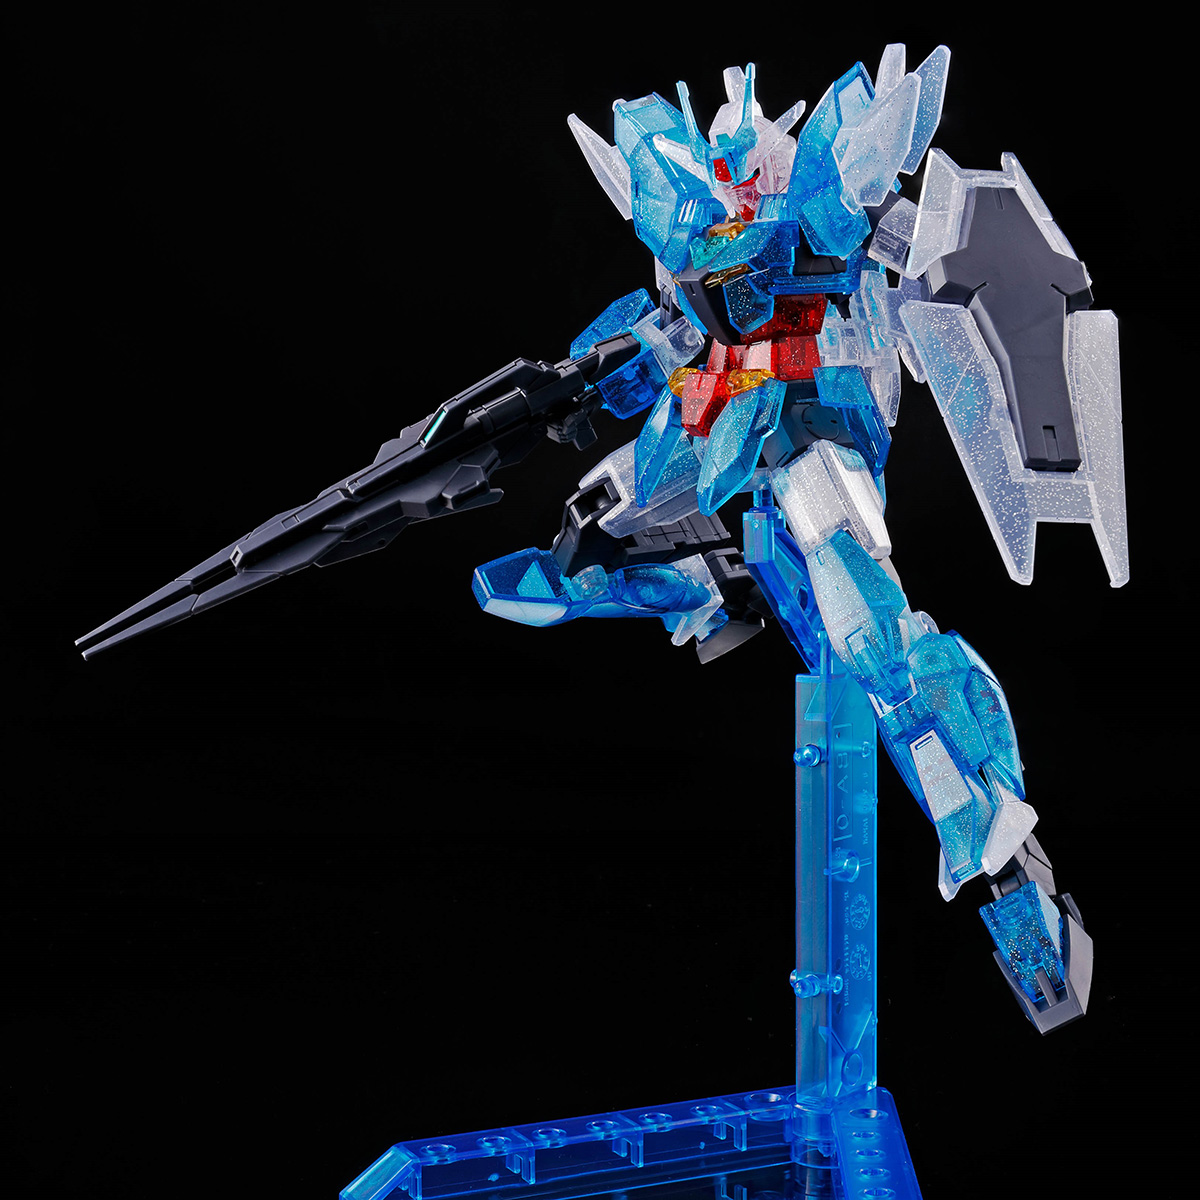 HG 1/144 EARTHREE GUNDAM [DIVE INTO DIMENSION CLEAR][Sep 2020 Delivery]